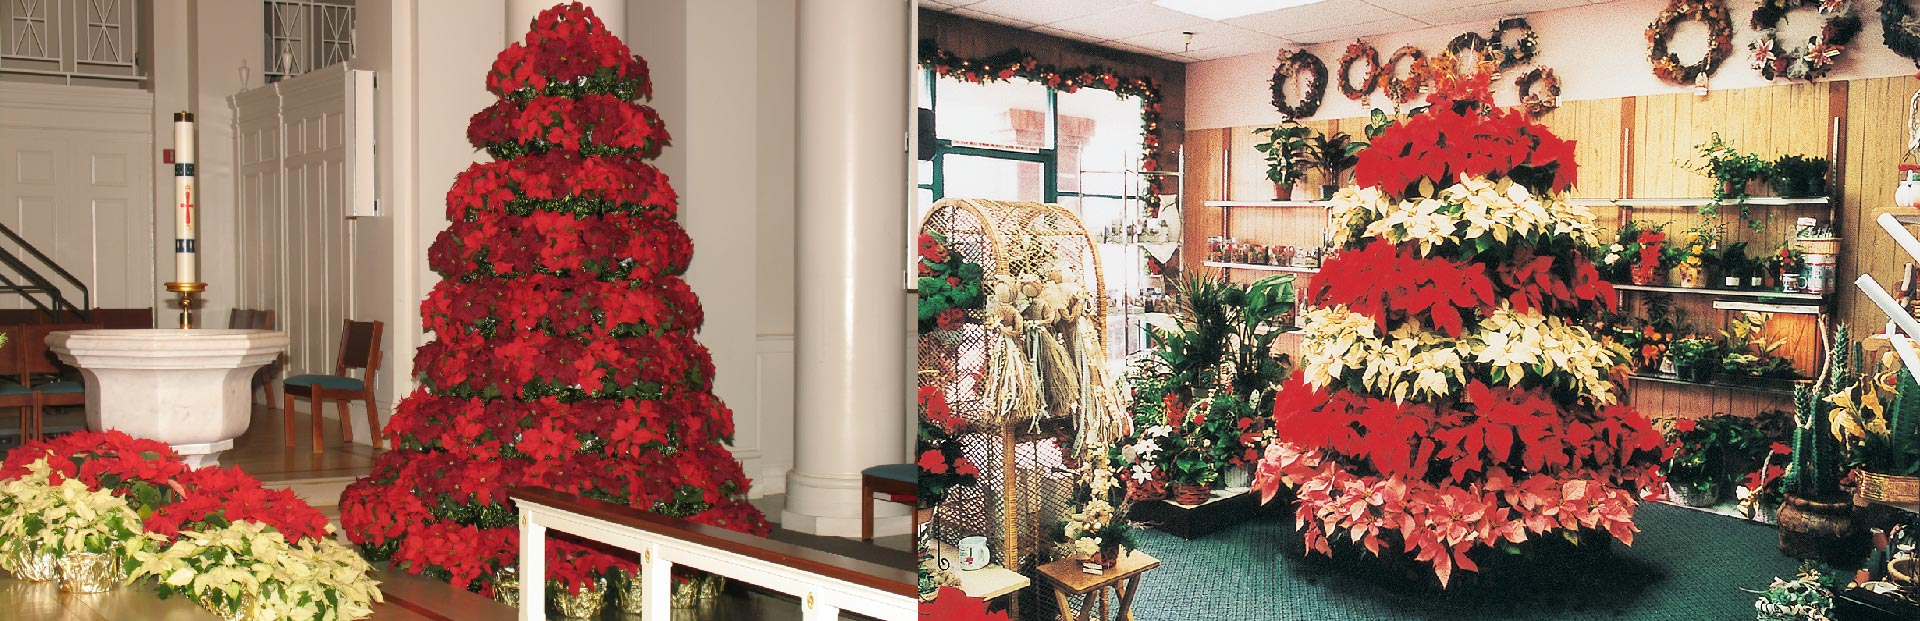 decorative poinsettia displays